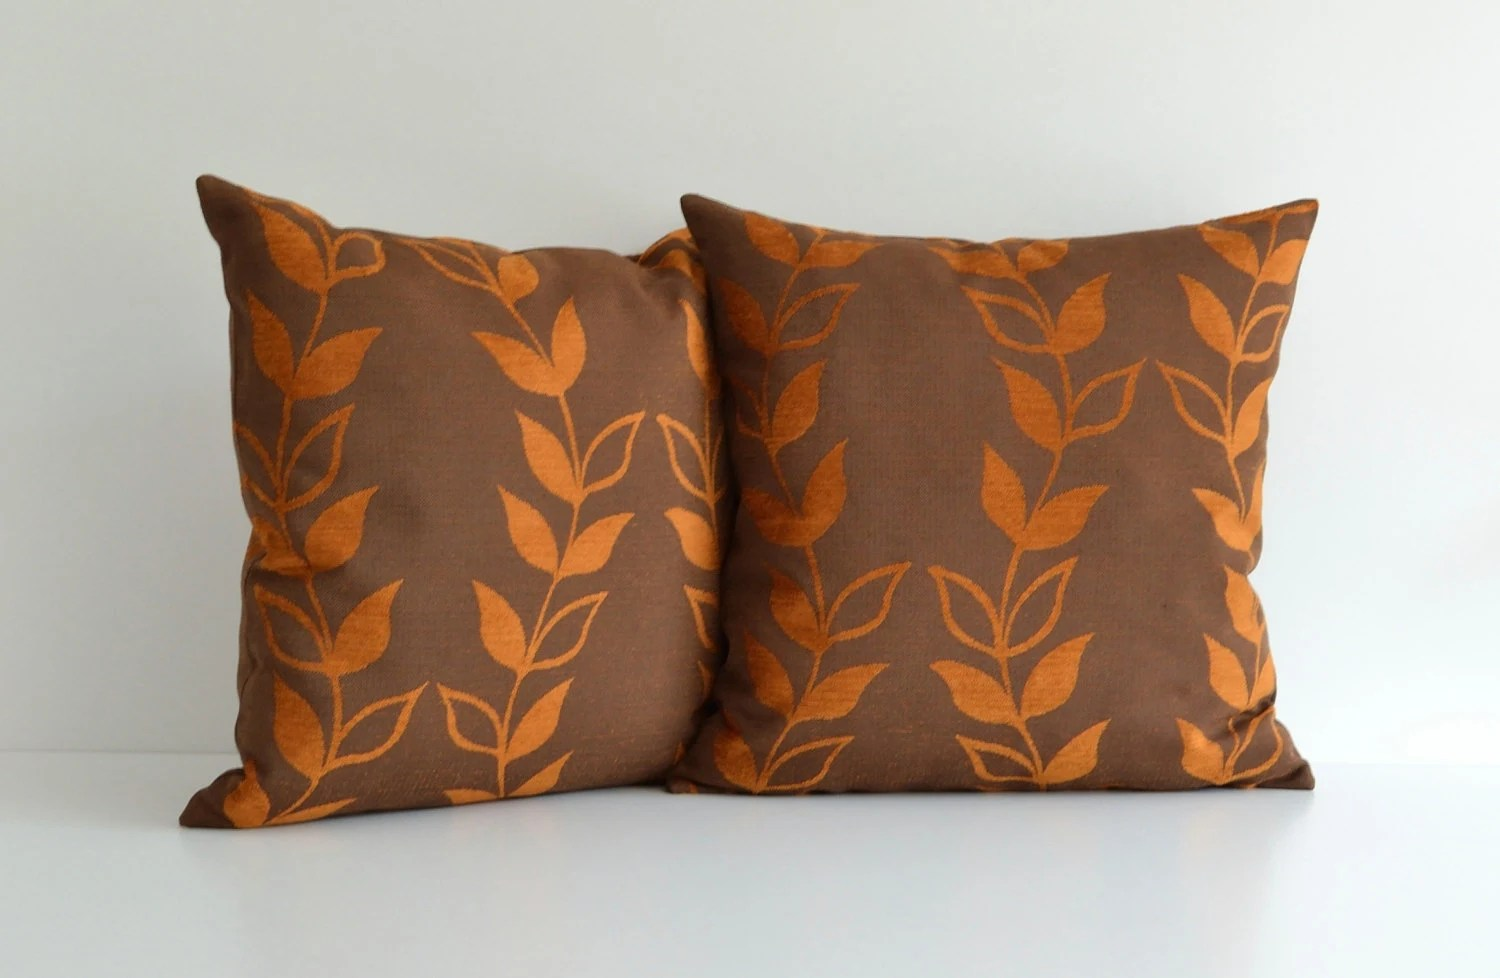 fancy sofa pillows images of tables 20x20 orange and brown decorative throw pillow for couch